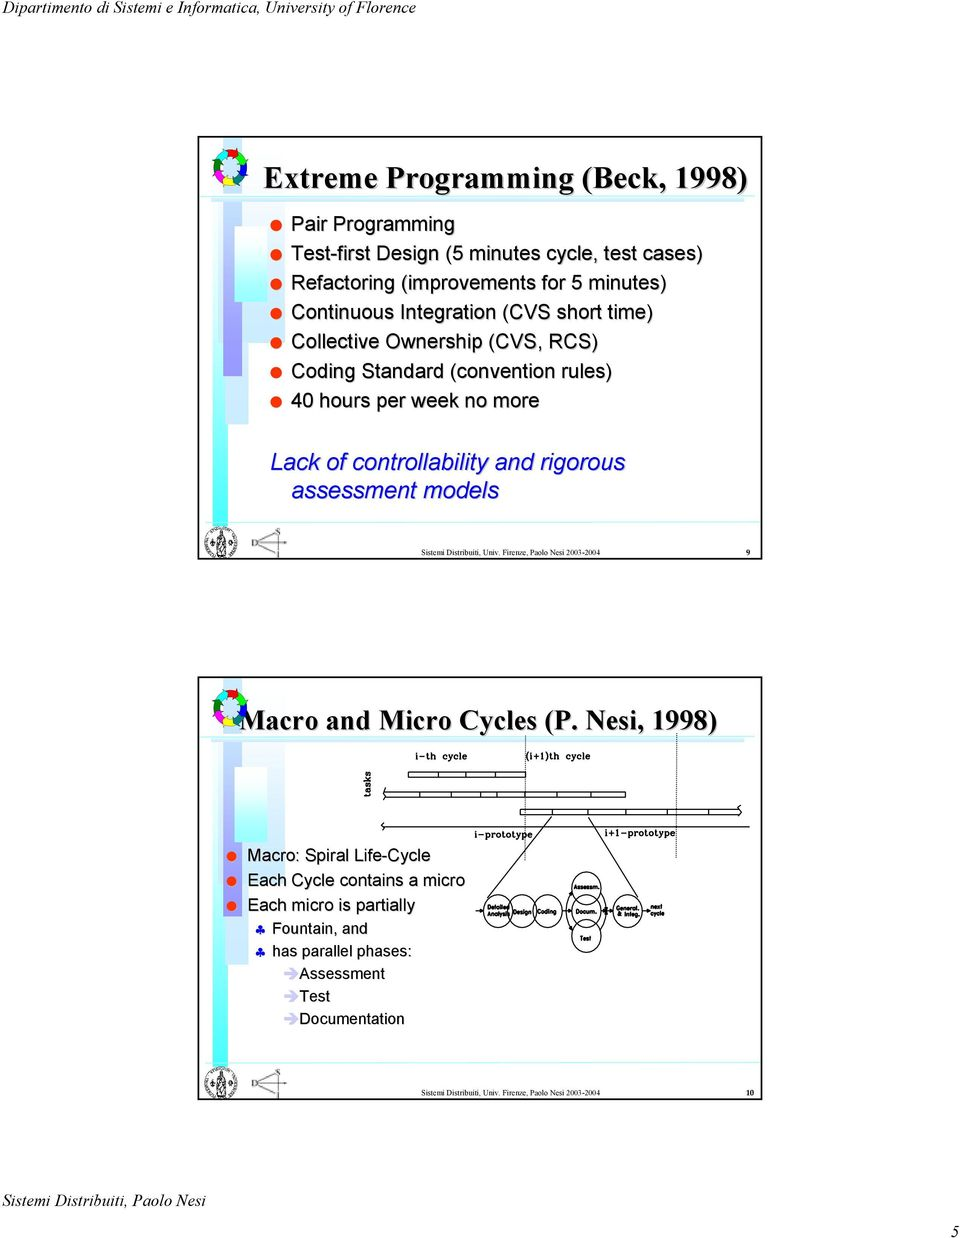 rigorous assessment models Sistemi Distribuiti, Univ. Firenze, Paolo Nesi 2003-2004 9 Macro and Micro Cycles (P.